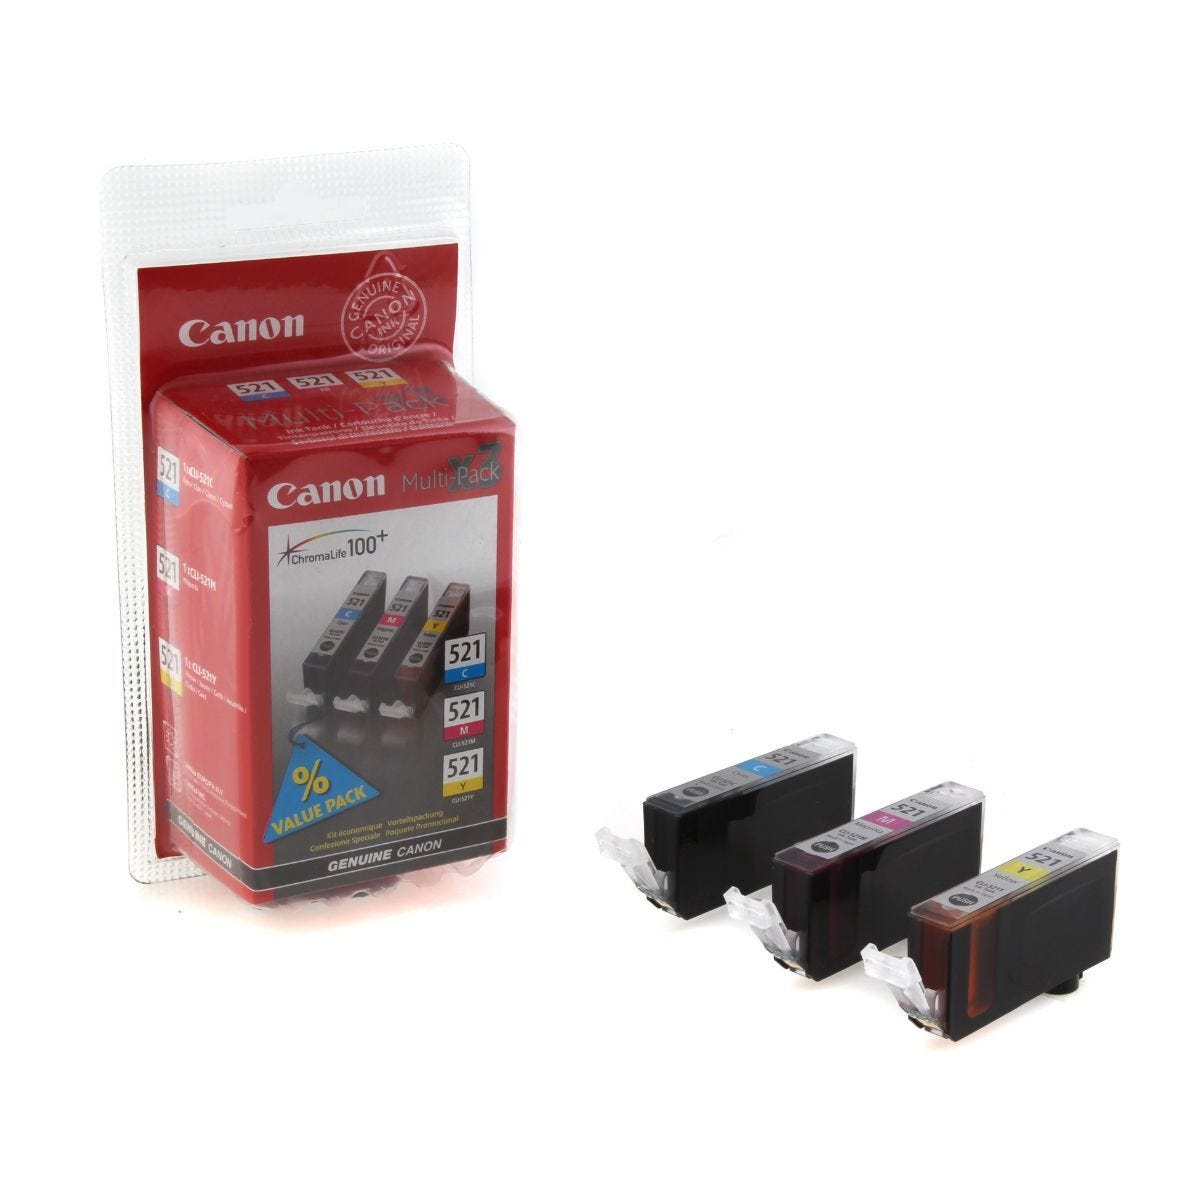 Canon CLI-521 Multipack Ink Cartridge